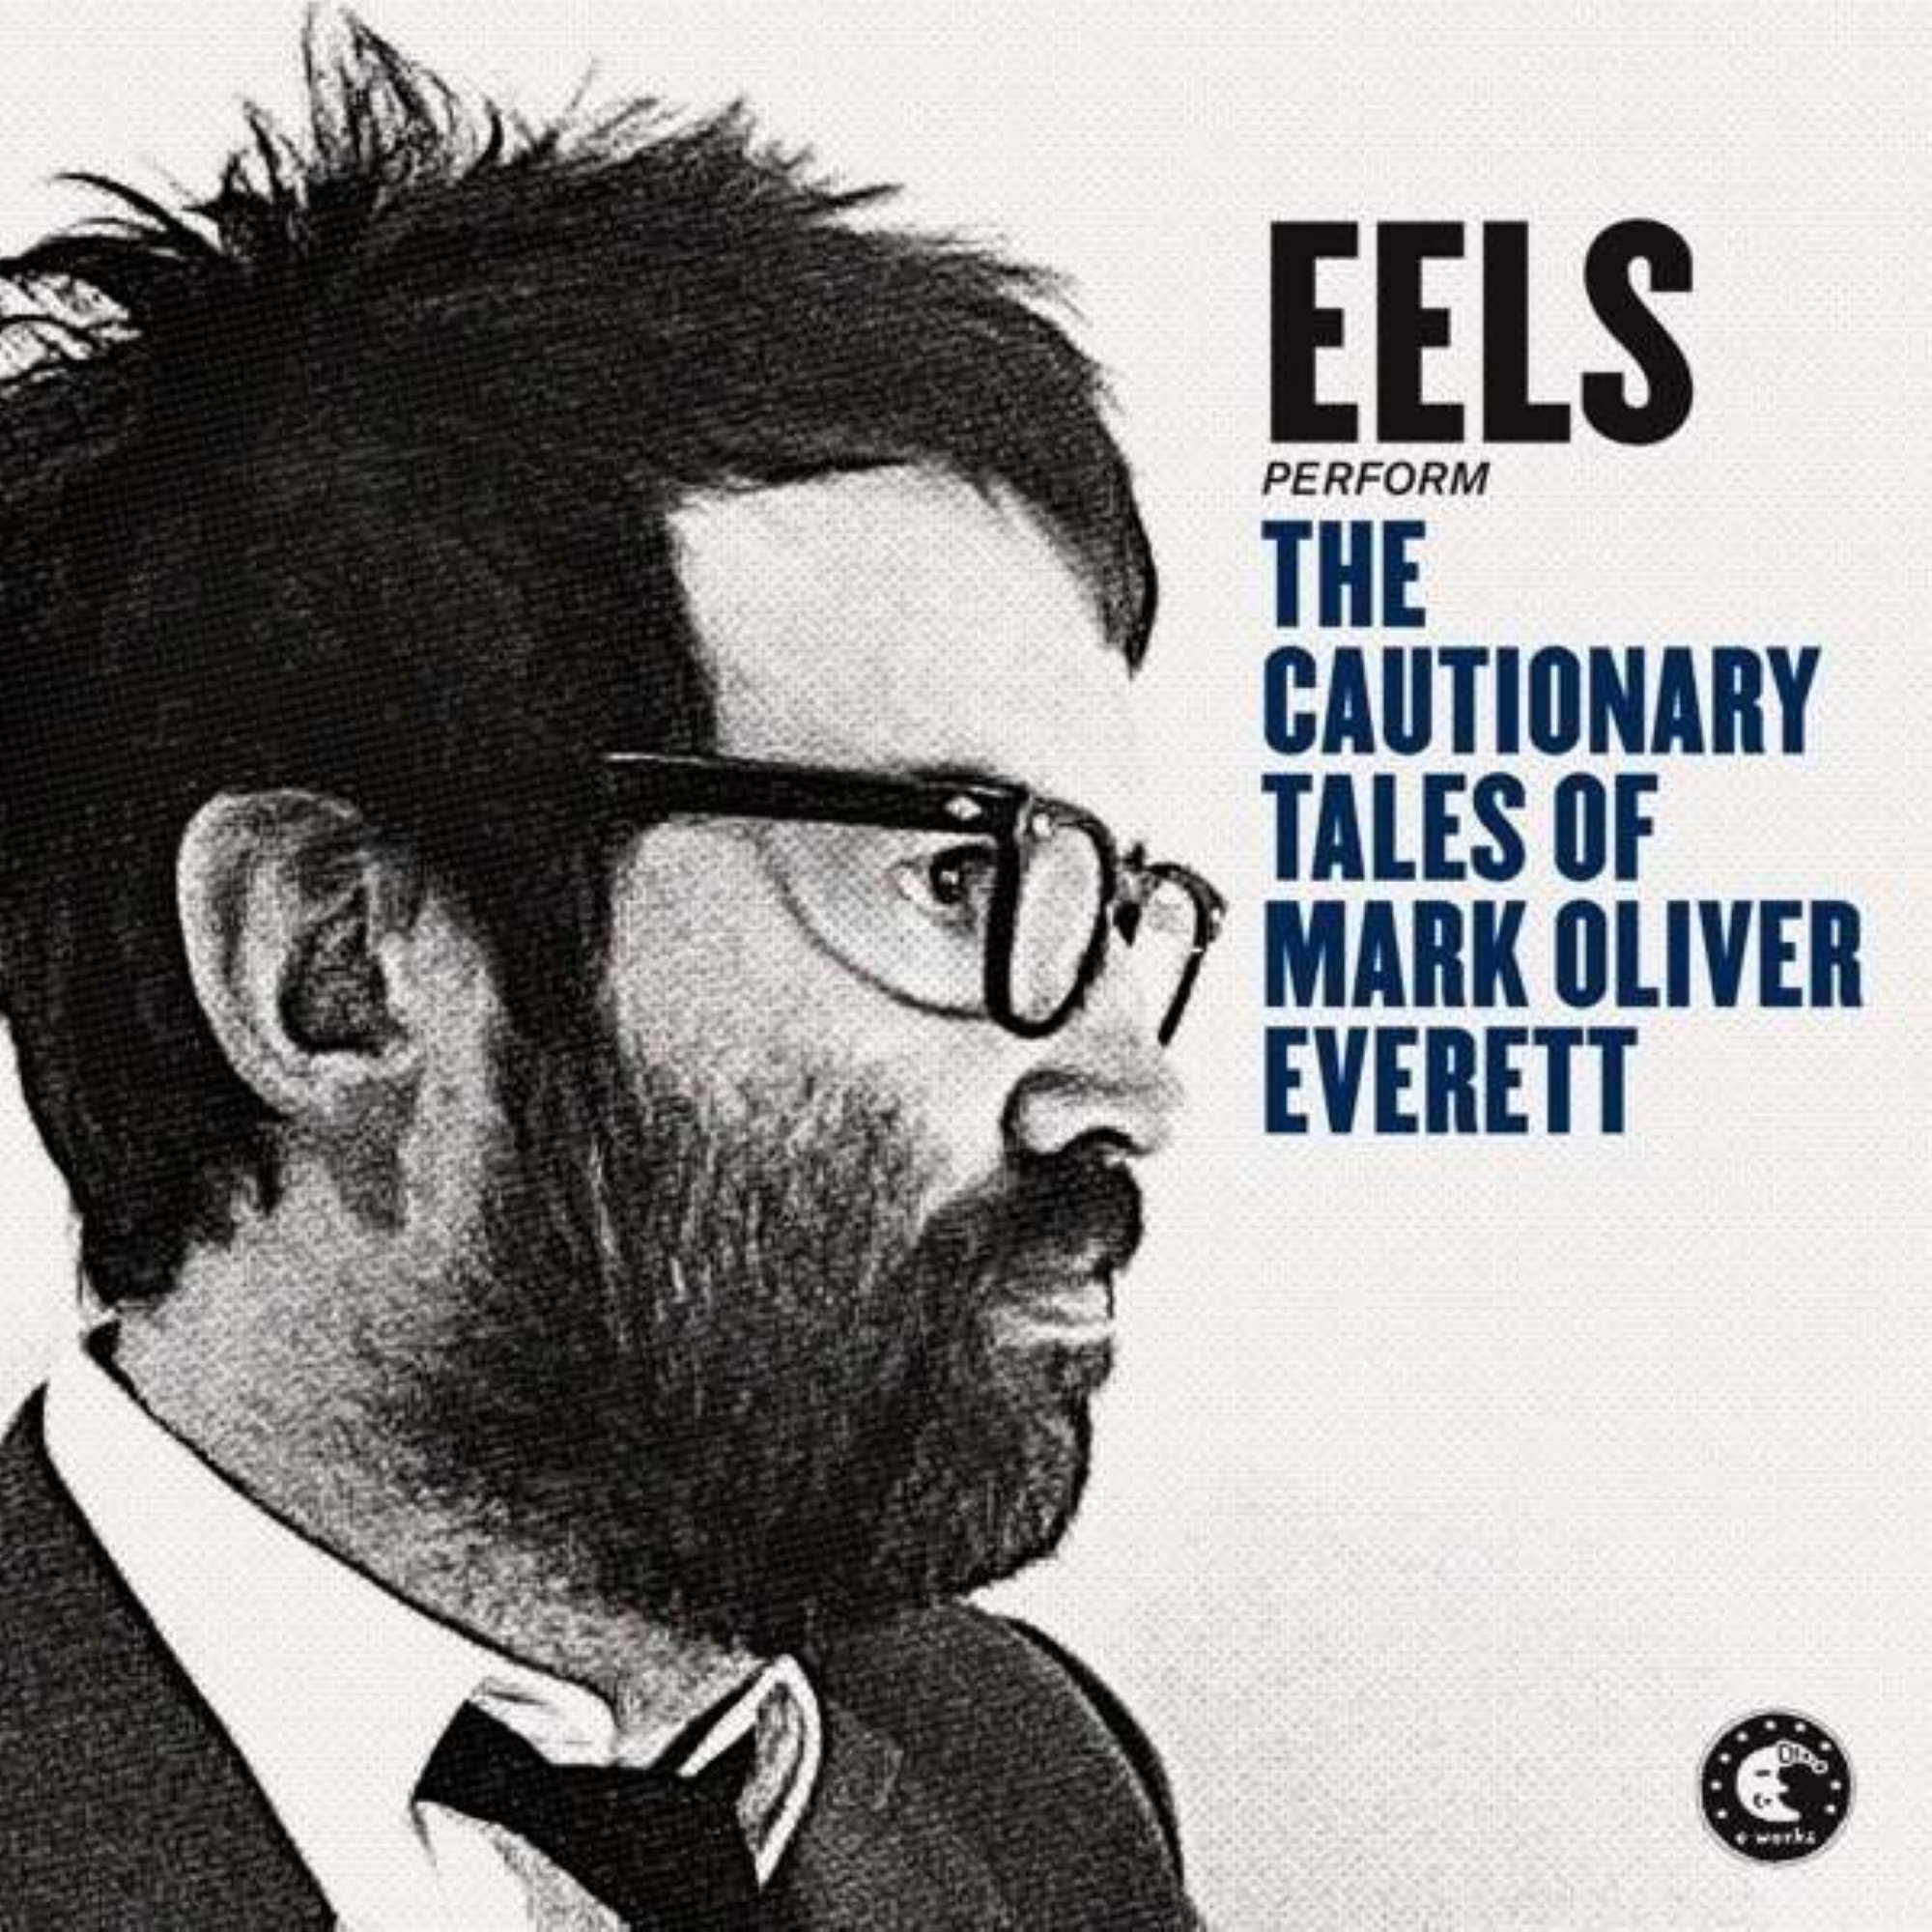 Eels, The Cautionary Tales of Mark Oliver Everett